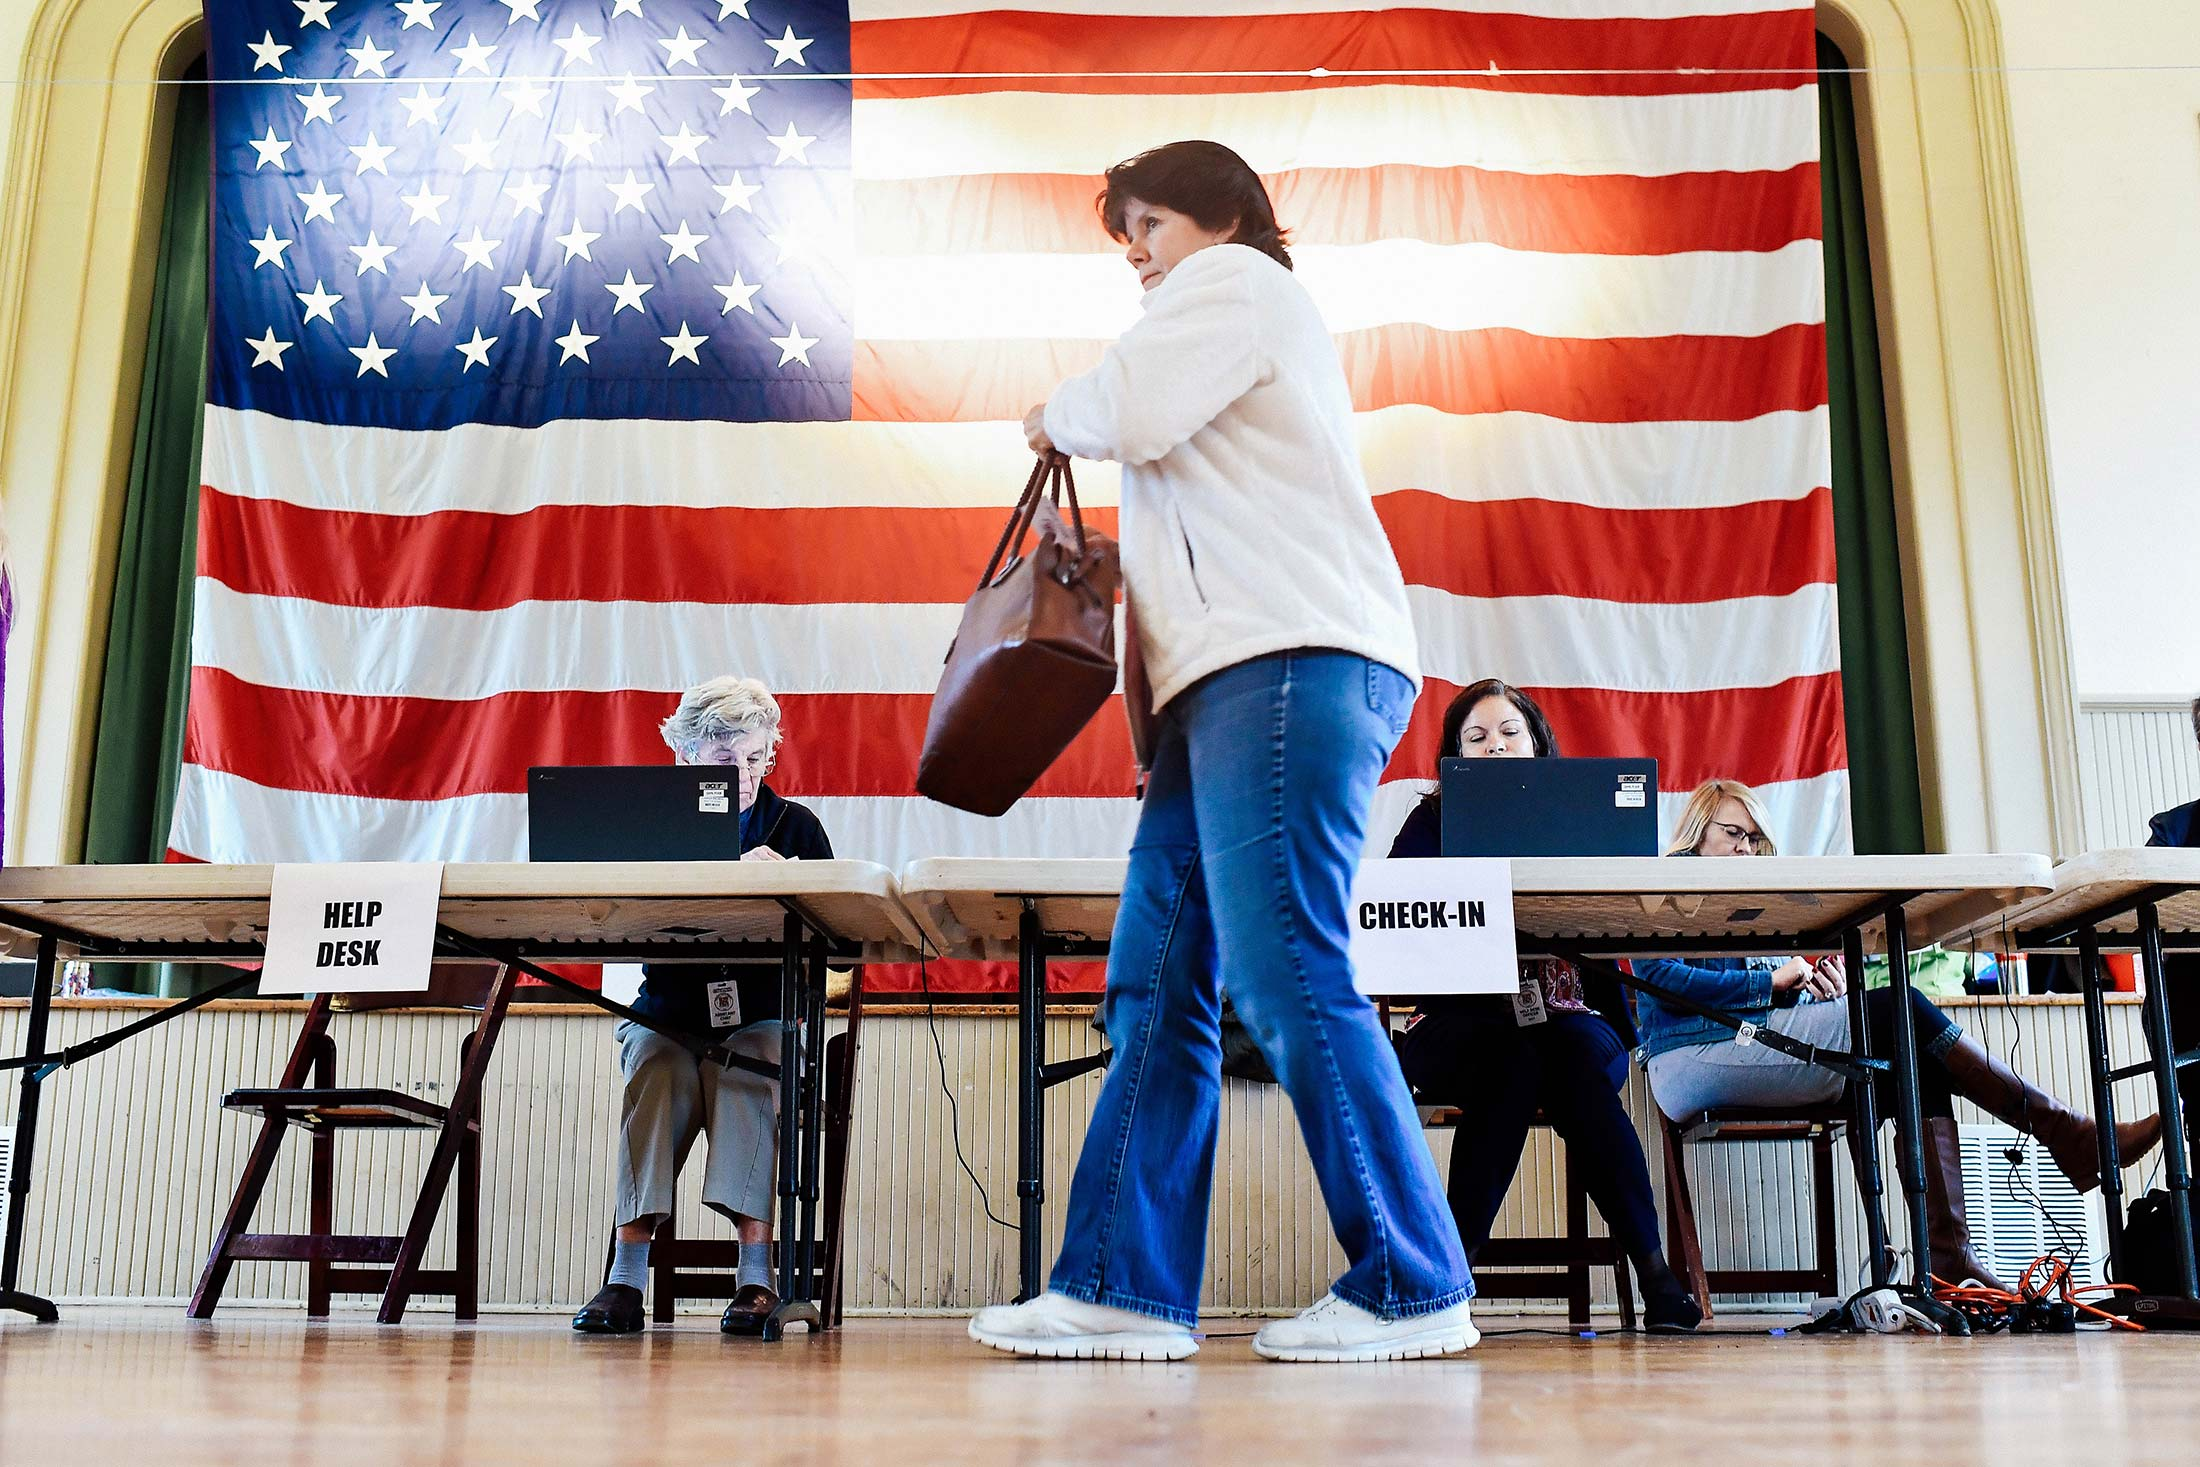 A woman at a polling place.